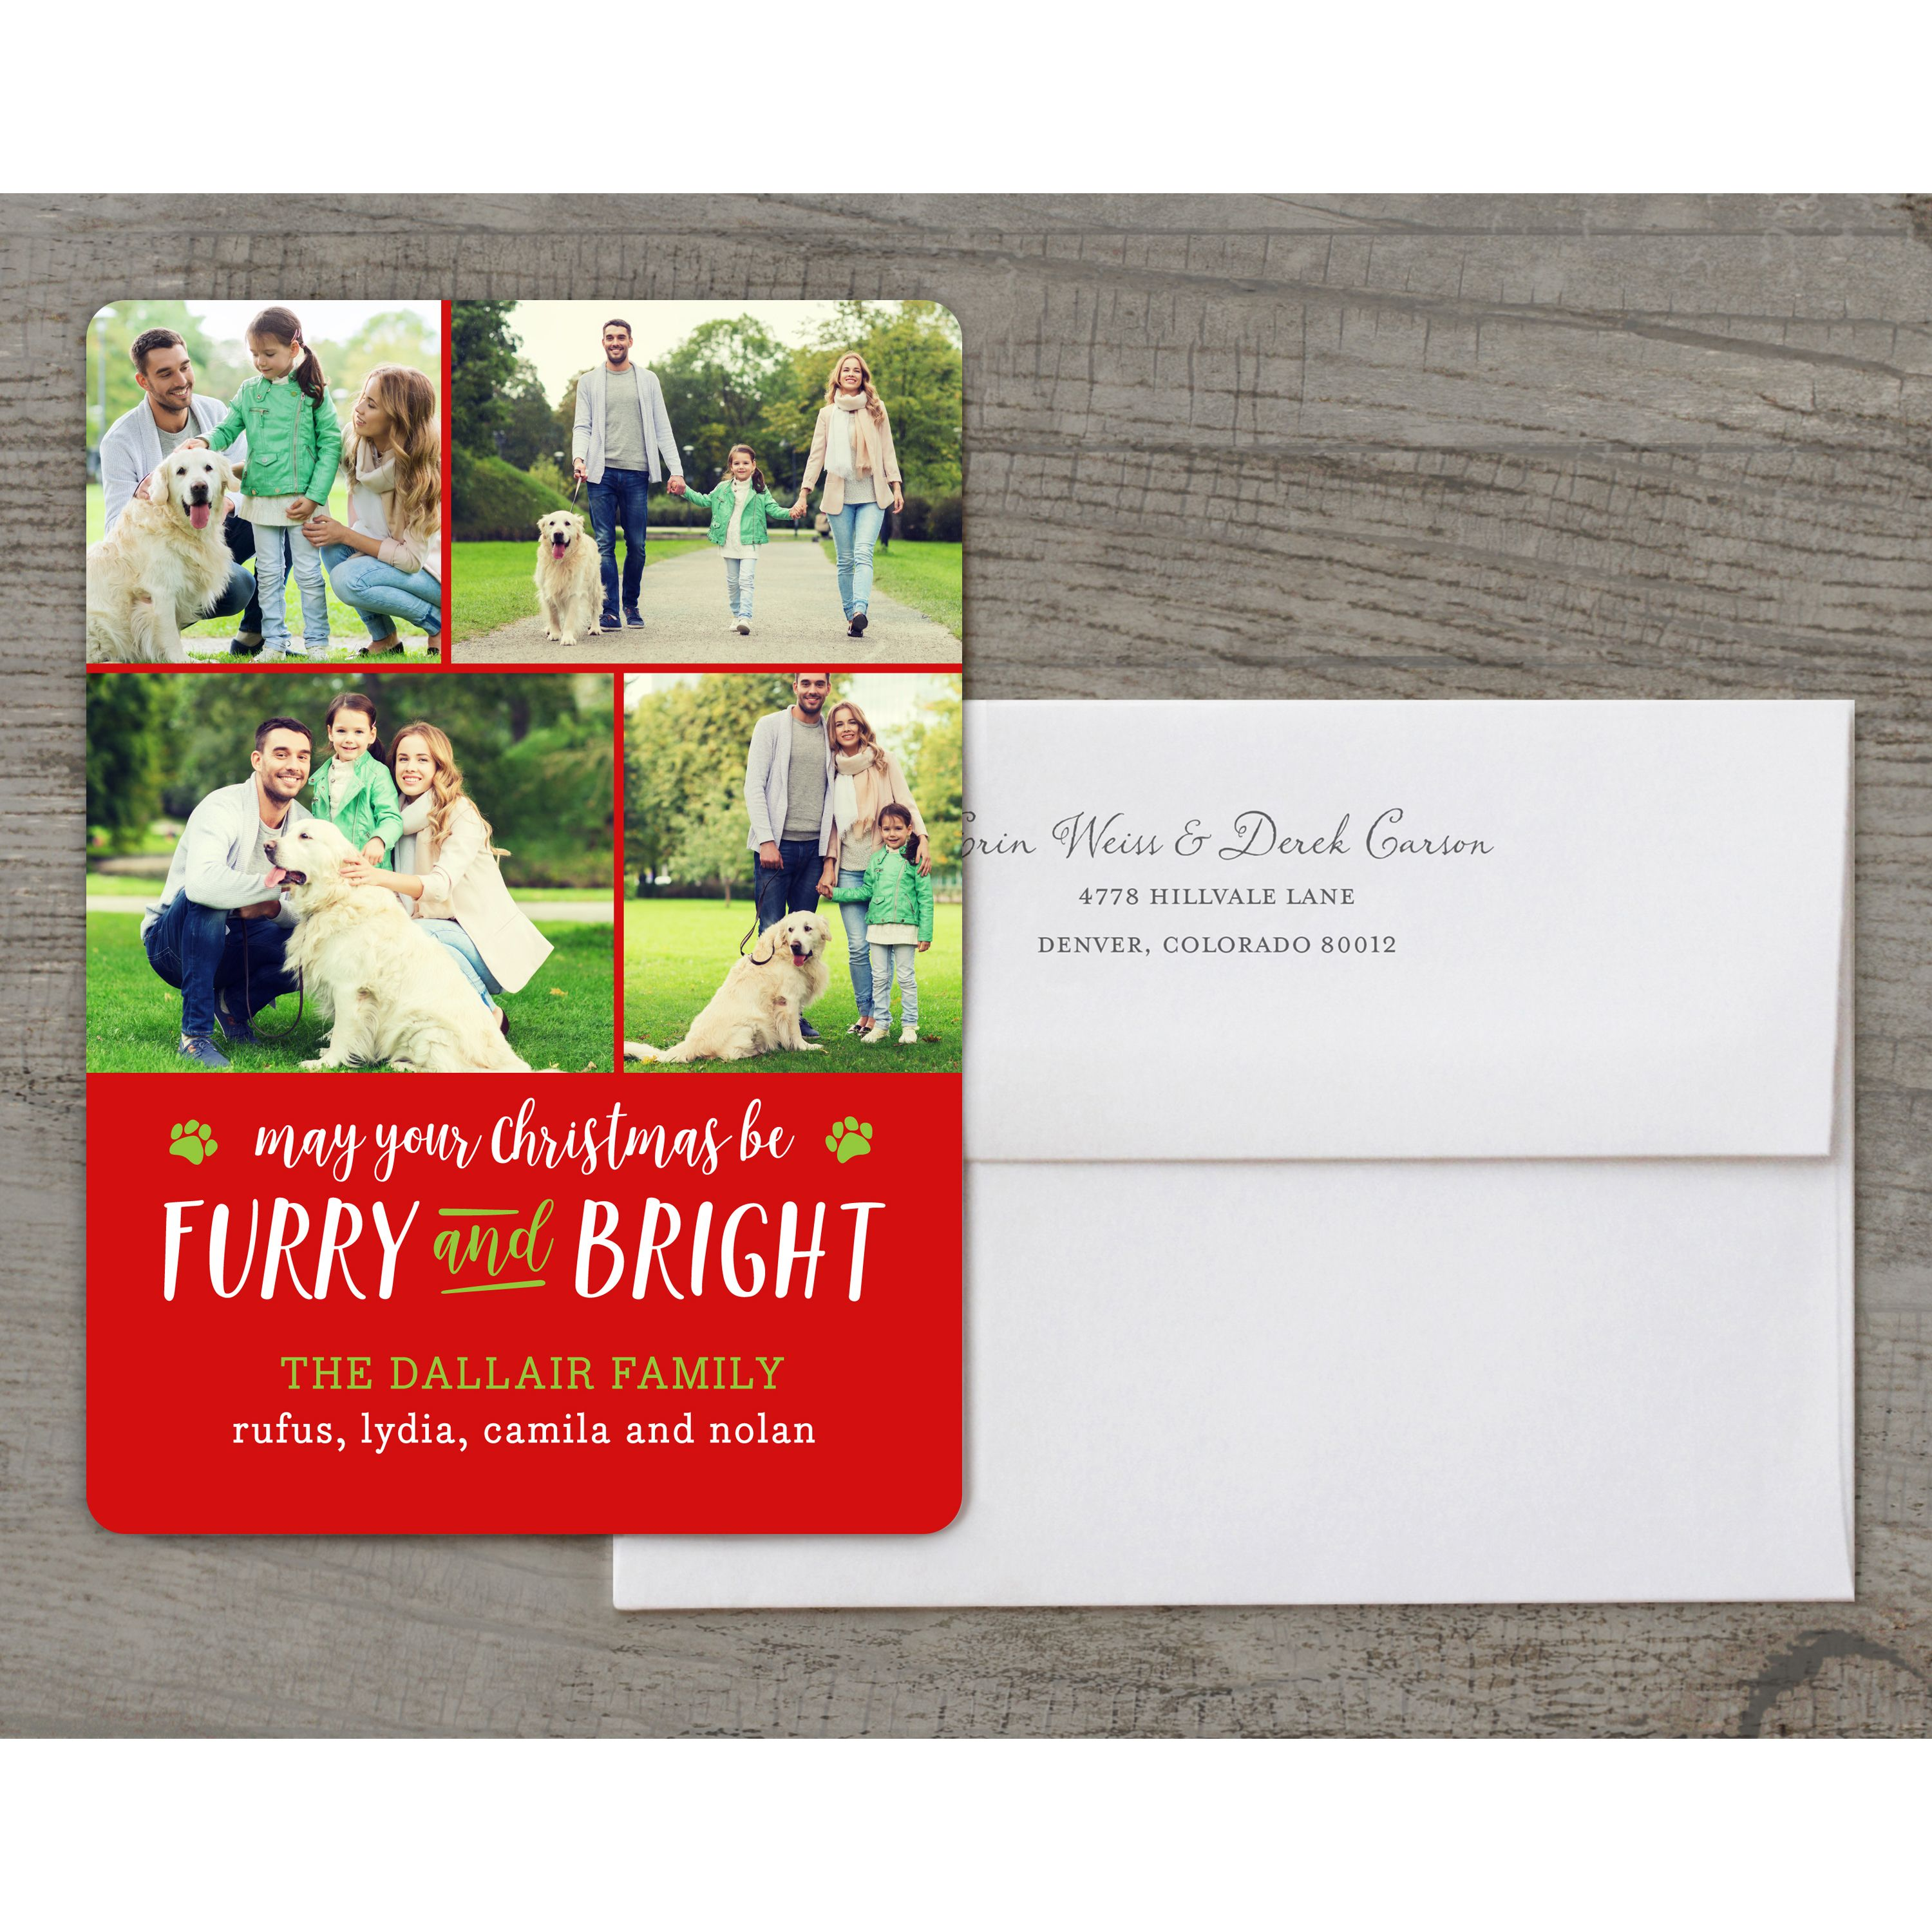 Furry and Bright - Deluxe 5x7 Personalized Holiday Pet Holiday Card